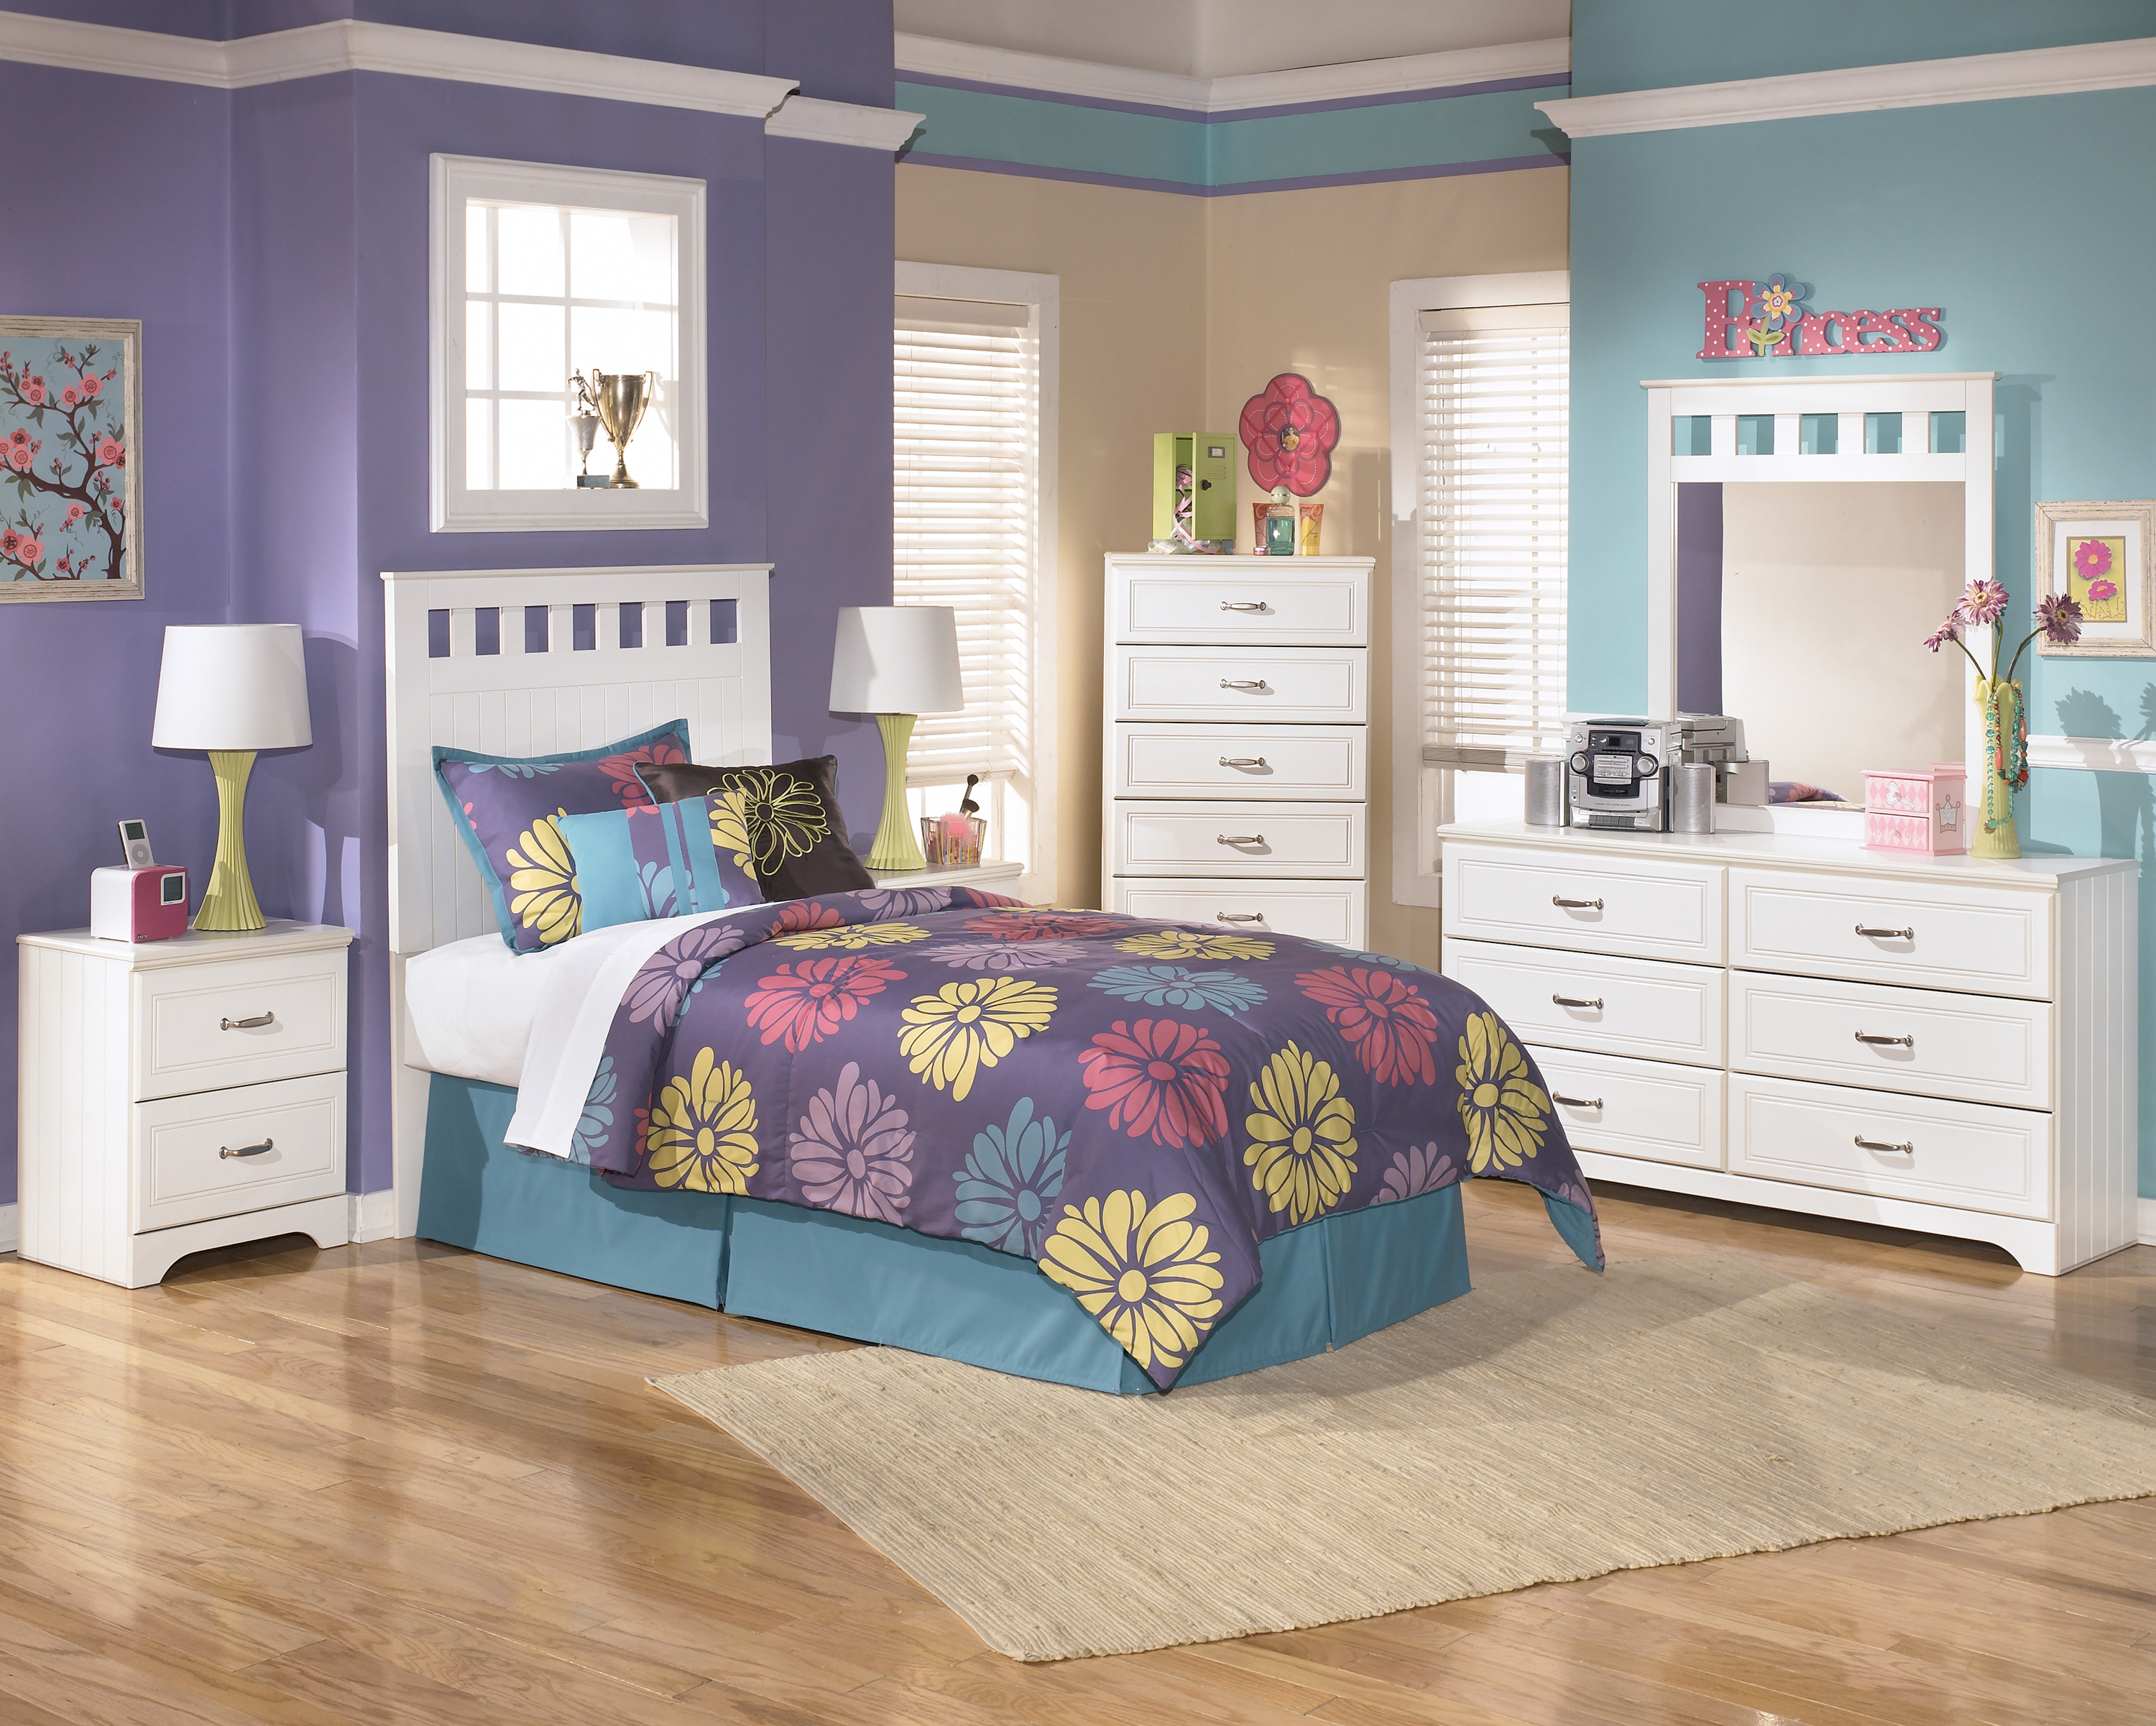 Bedroom great nursery sets nursery furniture sets from children XYXZGMH